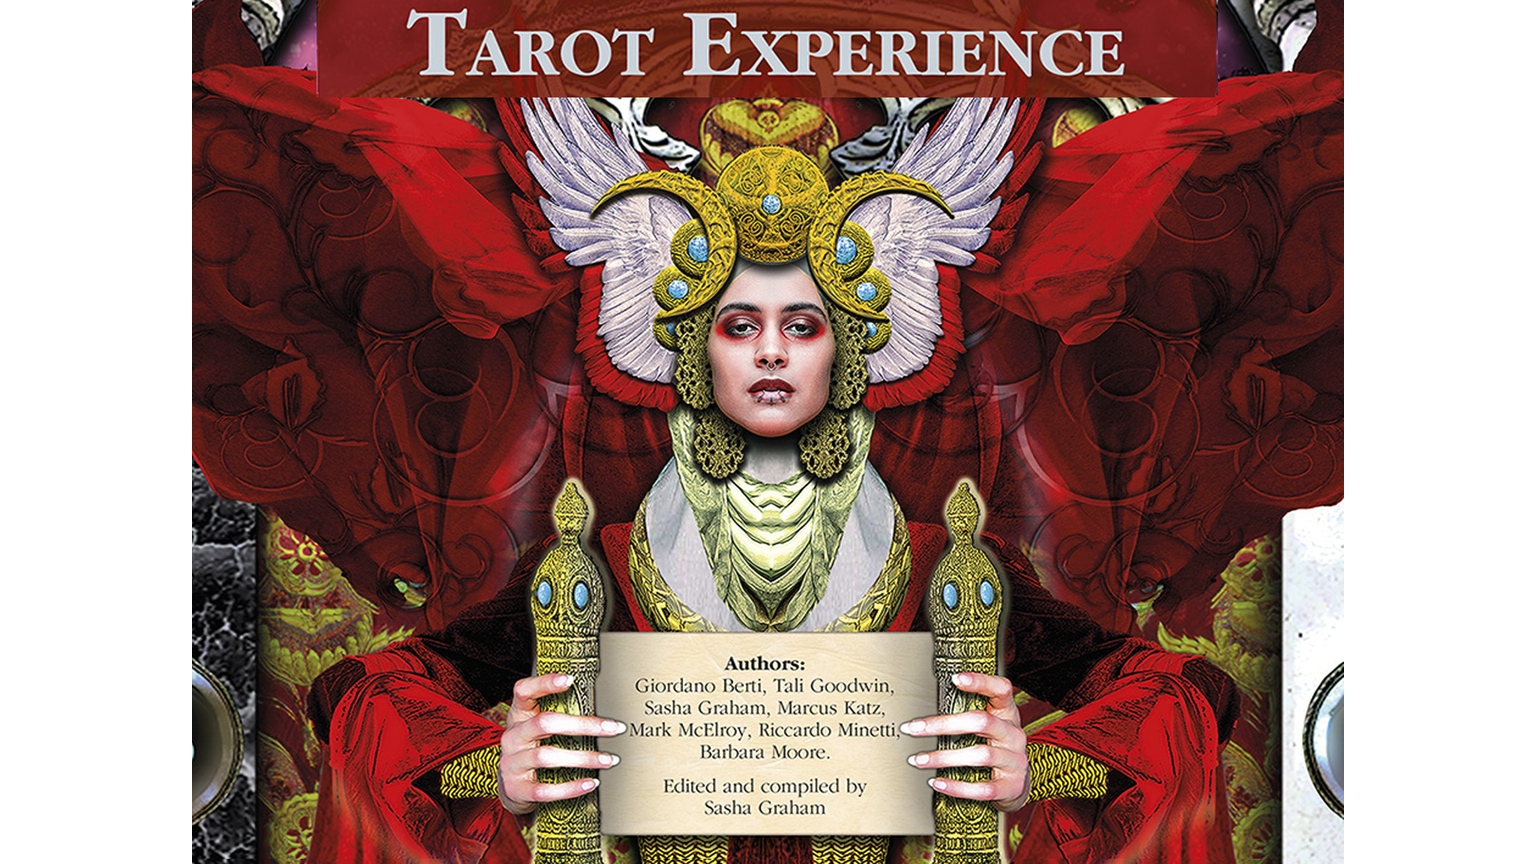 Tarot Experience cover piece